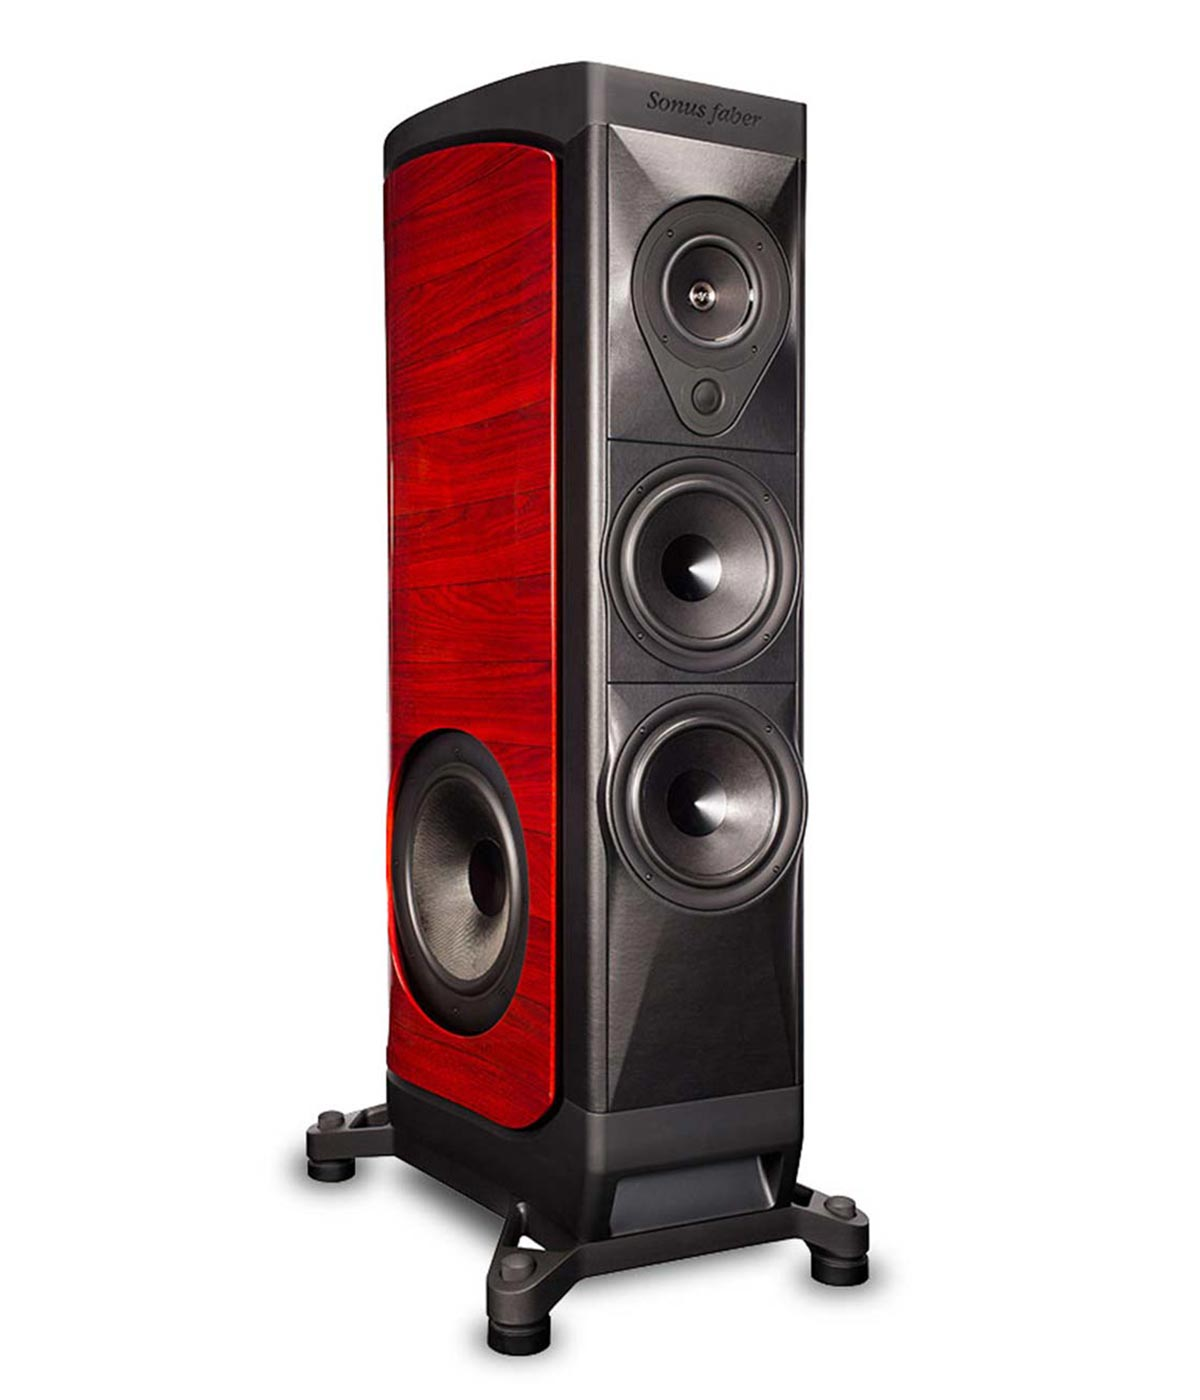 The Sonus Faber Reference